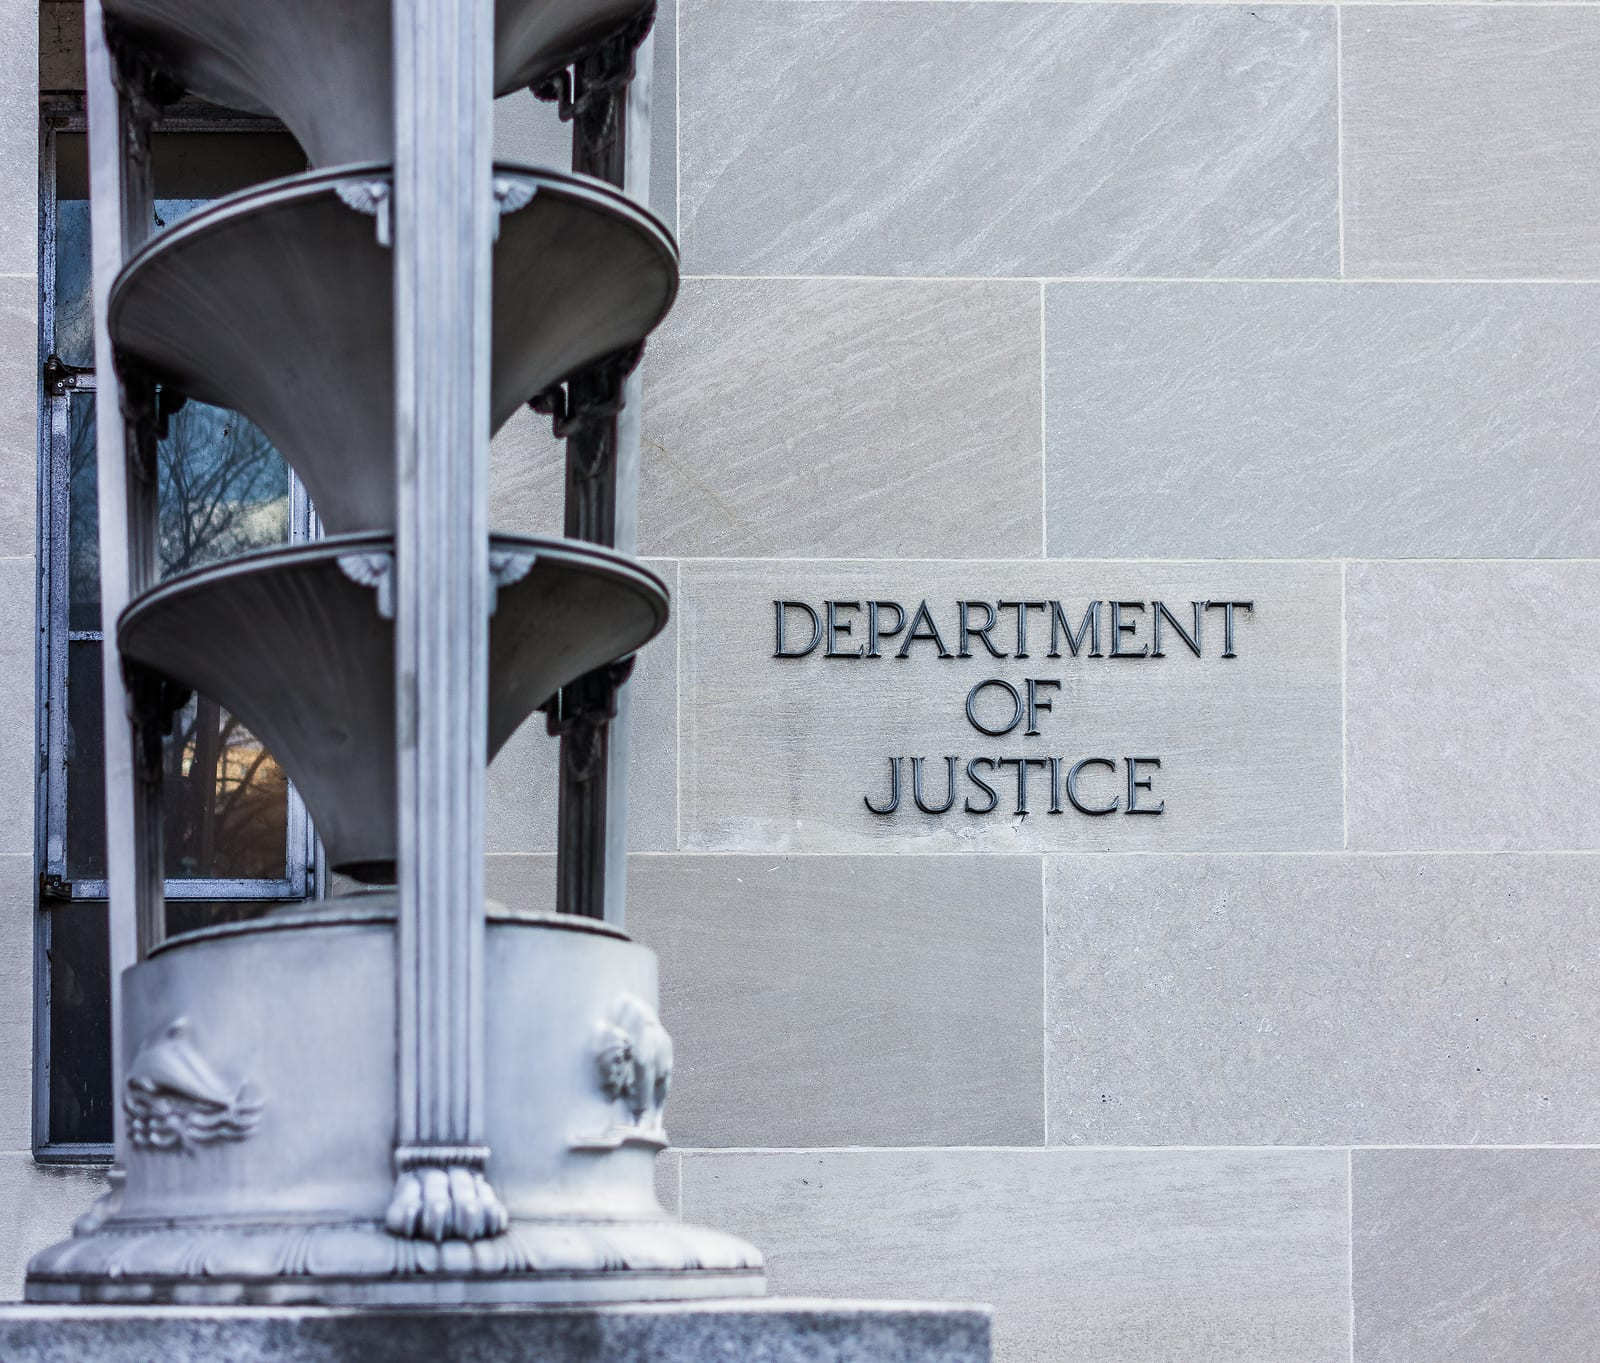 Virginia News: ALEXANDRIA, Russian National Charged with Interfering in U.S. Political System